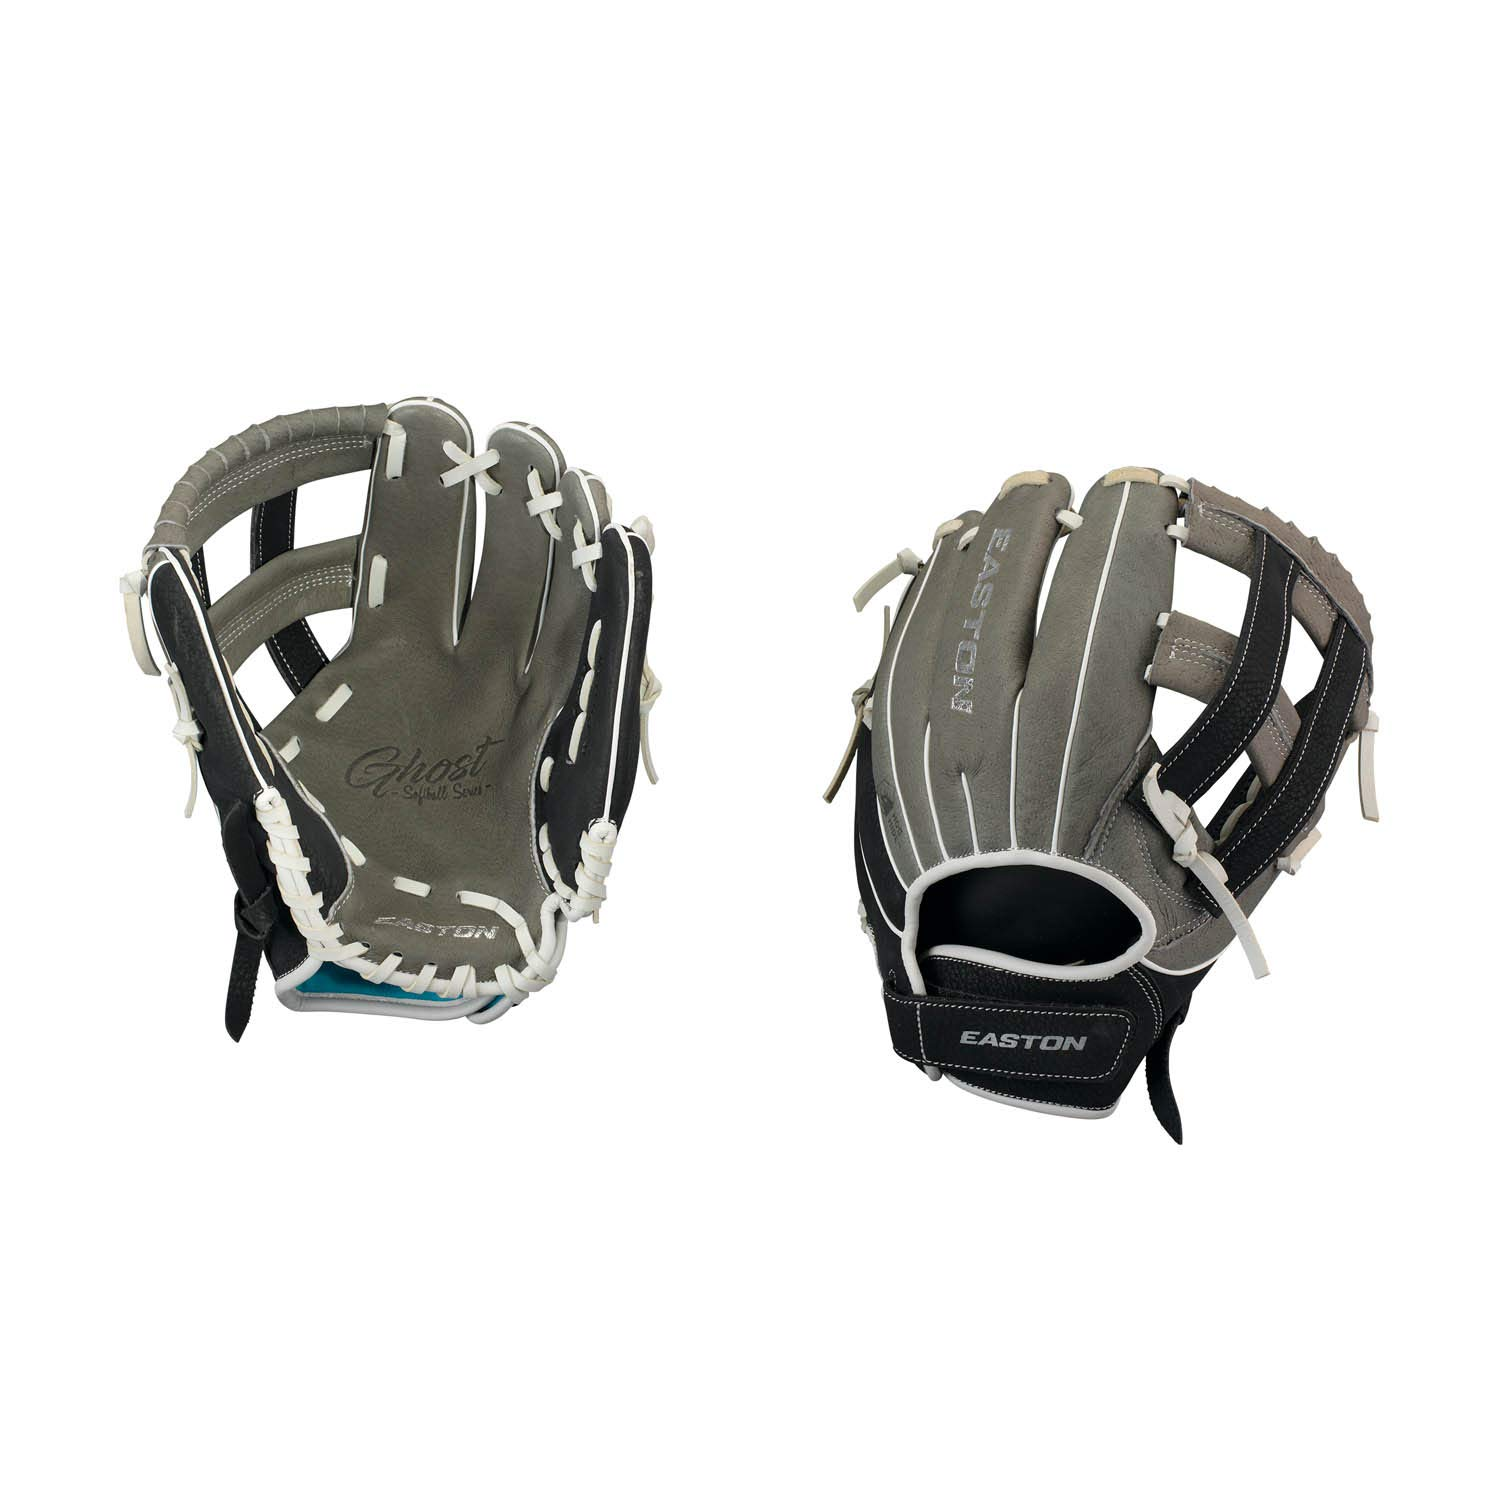 絶対一番安い Easton Ghost Granite, Flex Web Fastpitchシリーズ 野球グローブ Granite, B07FN8MTV6 Granite, H Web|12インチ Granite, H Web, 常陸美装:fd349d95 --- a0267596.xsph.ru